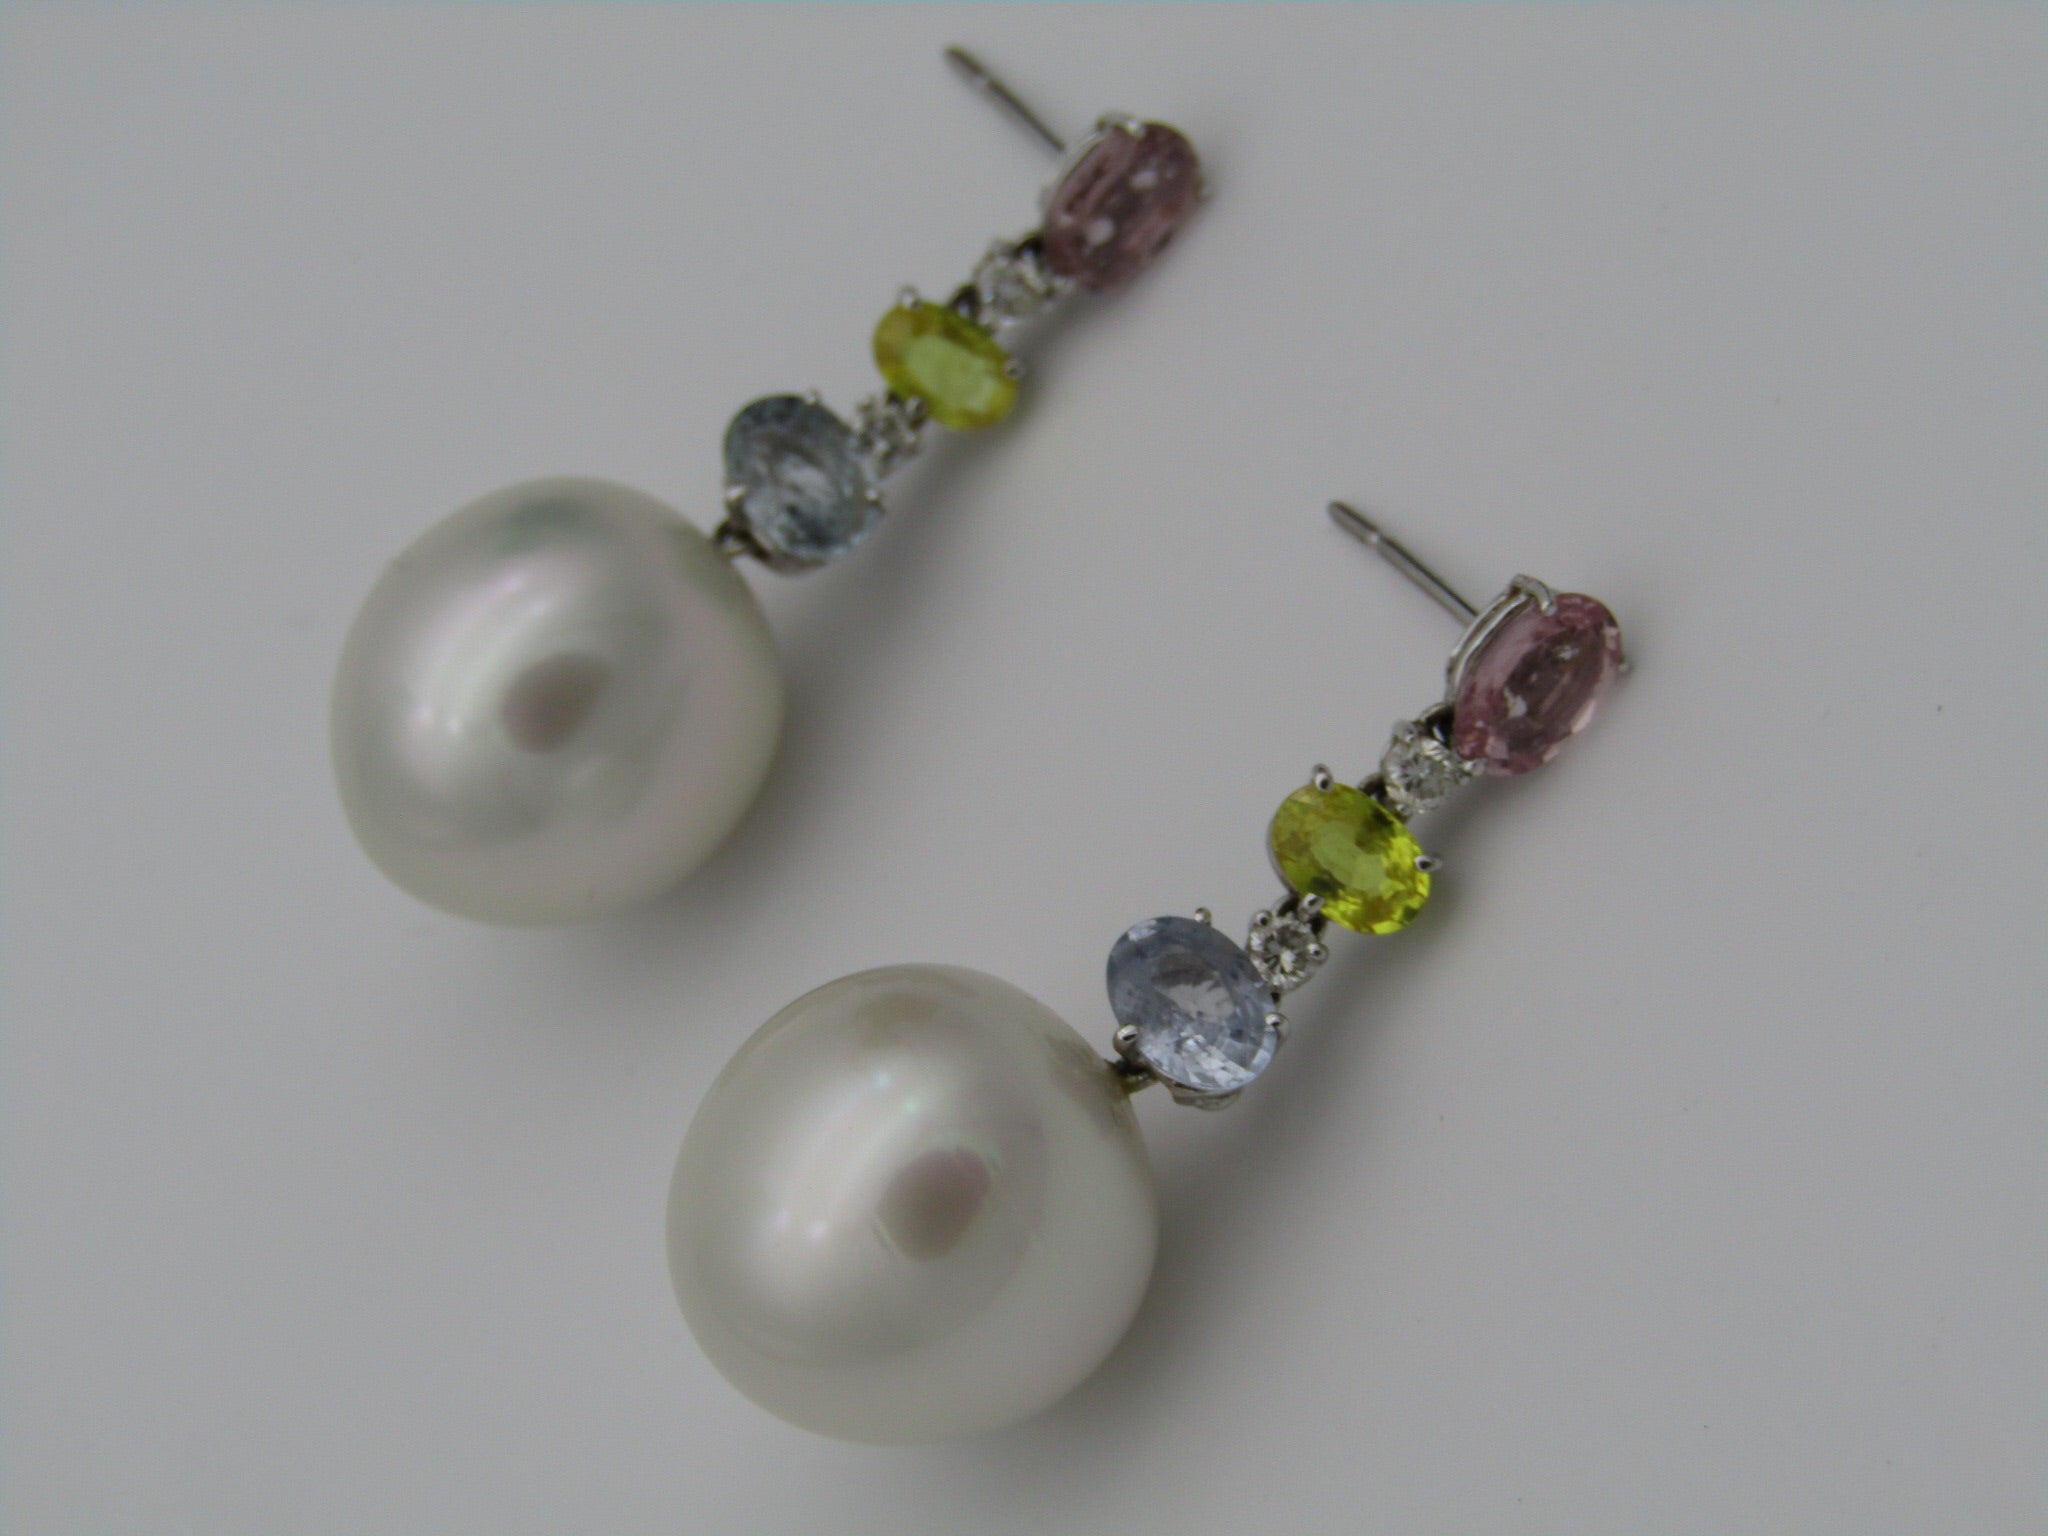 Pair of 18kt white gold South Sea Pearls, sapphires, and diamonds earrings by La Putri.